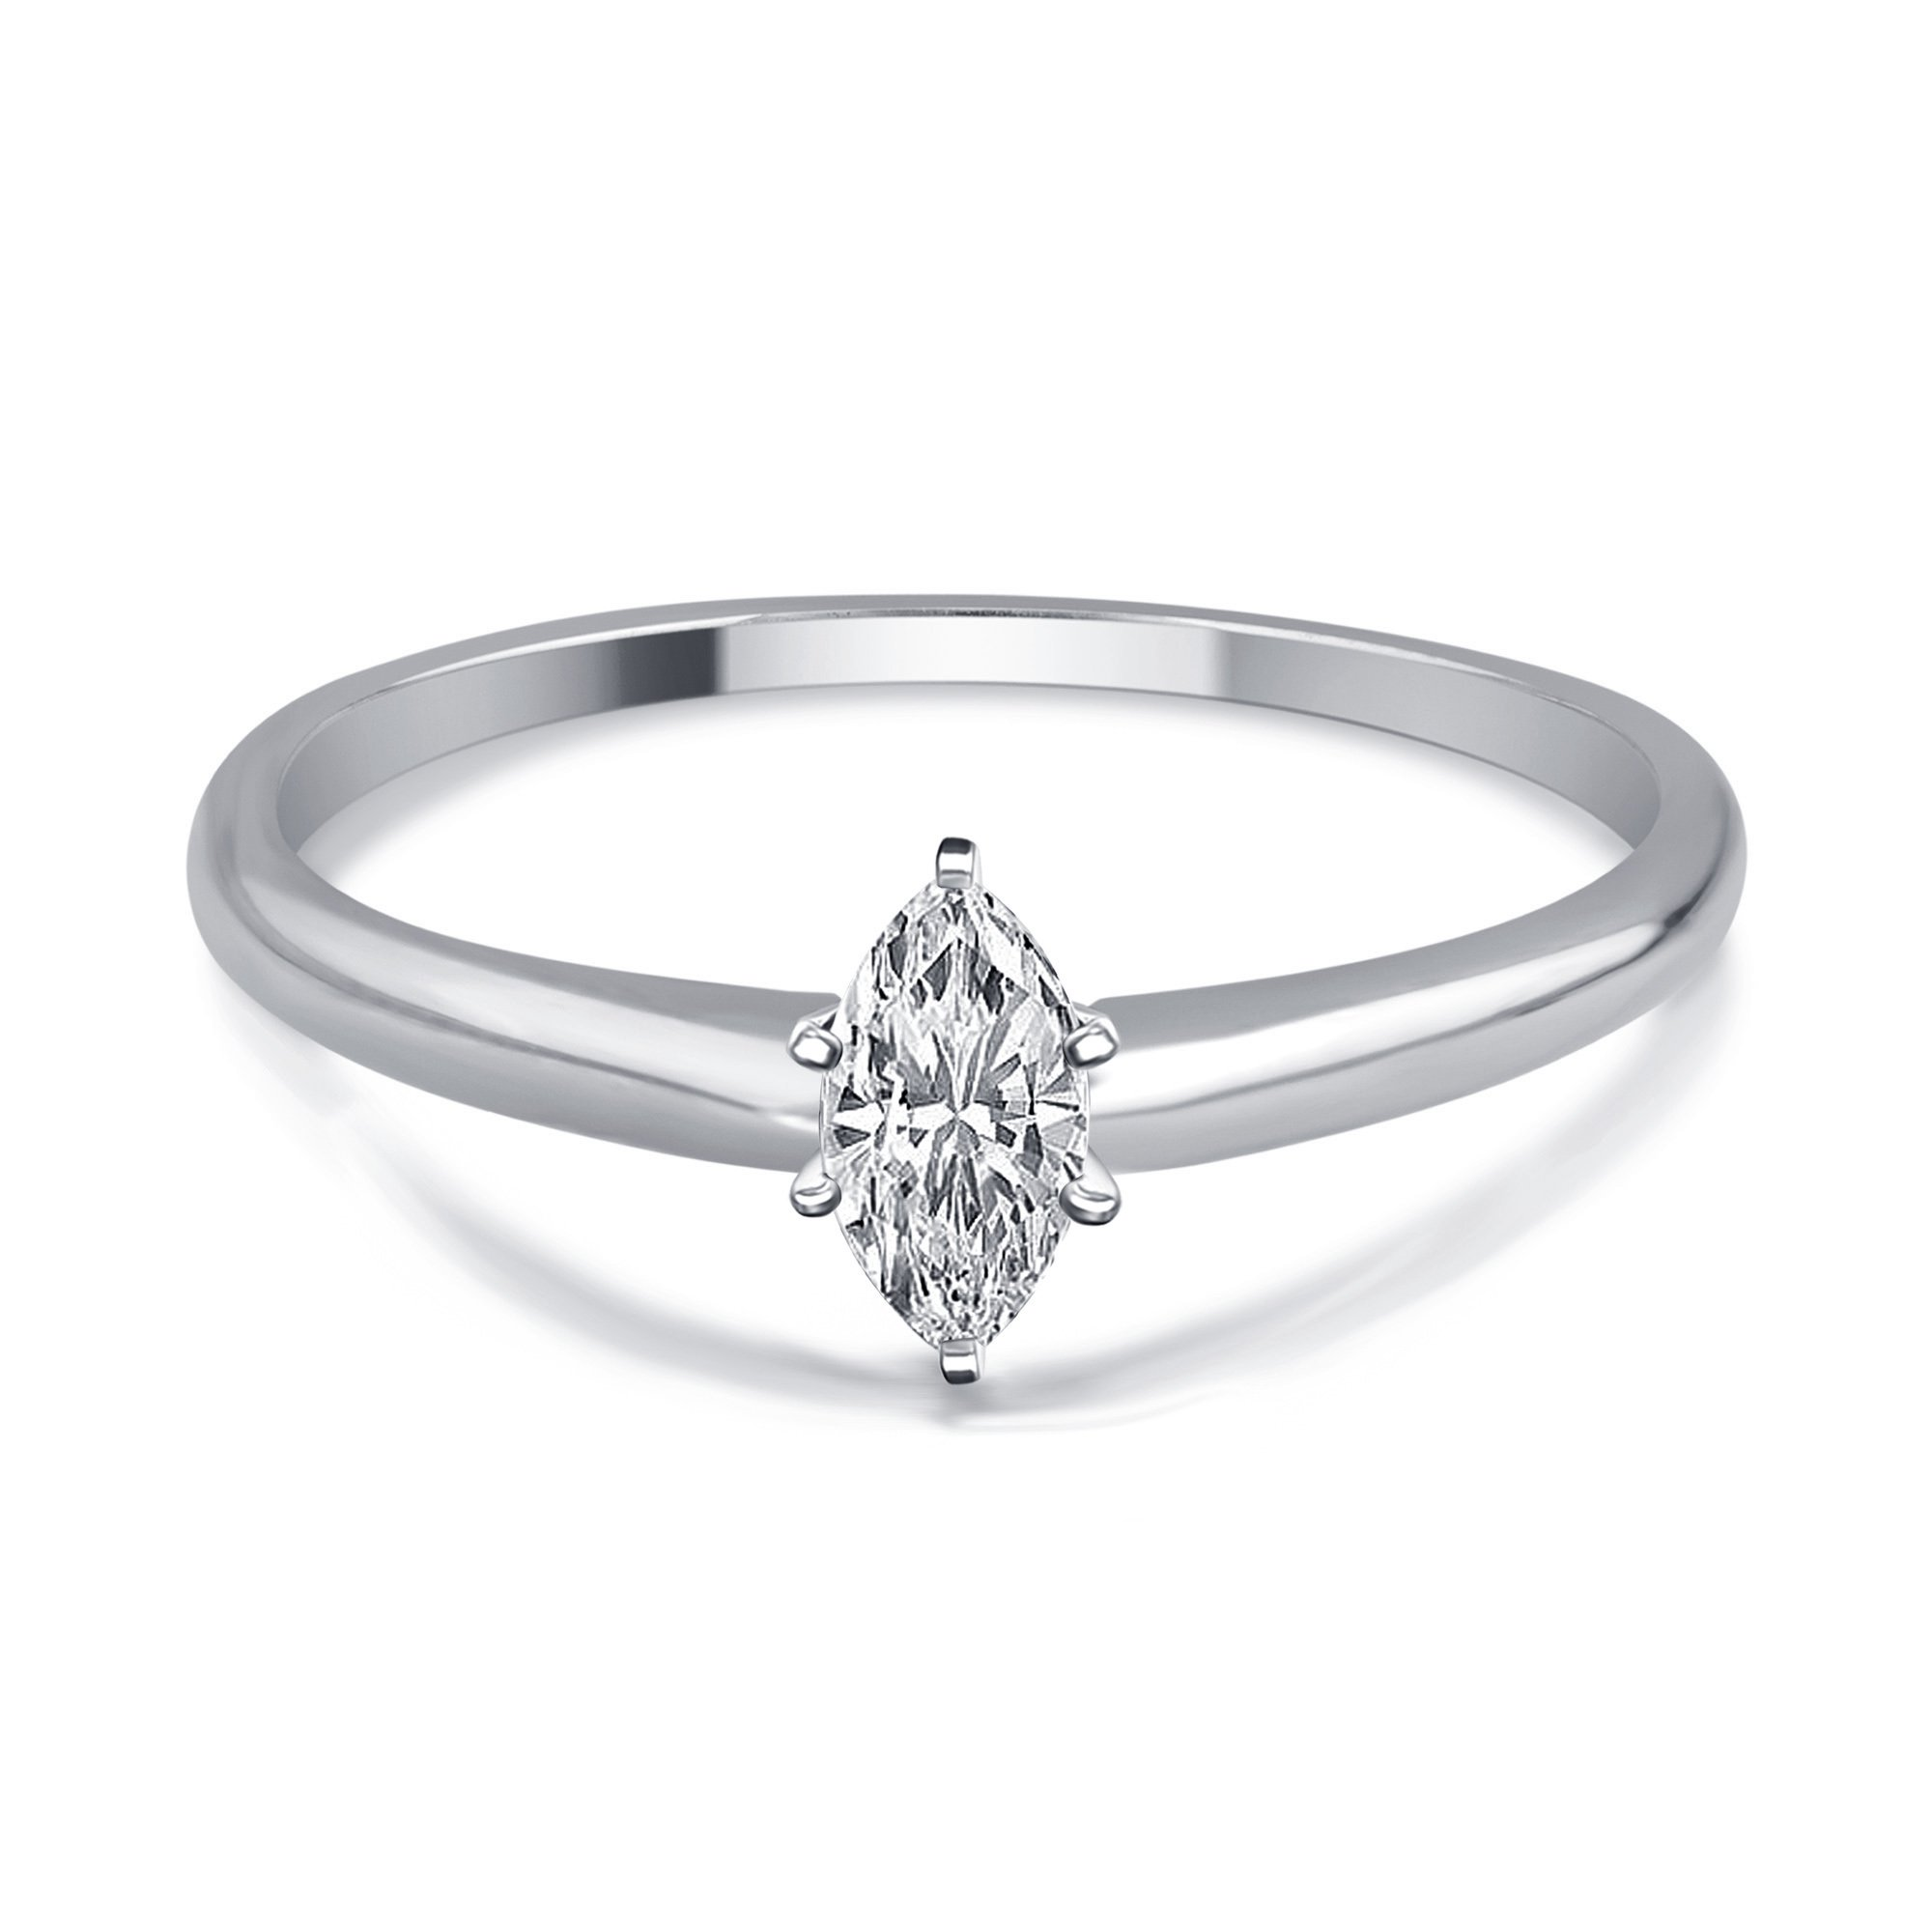 1/4 Cttw Marquise Diamond Solitaire Ring in 14K White Gold by DiamondMuse